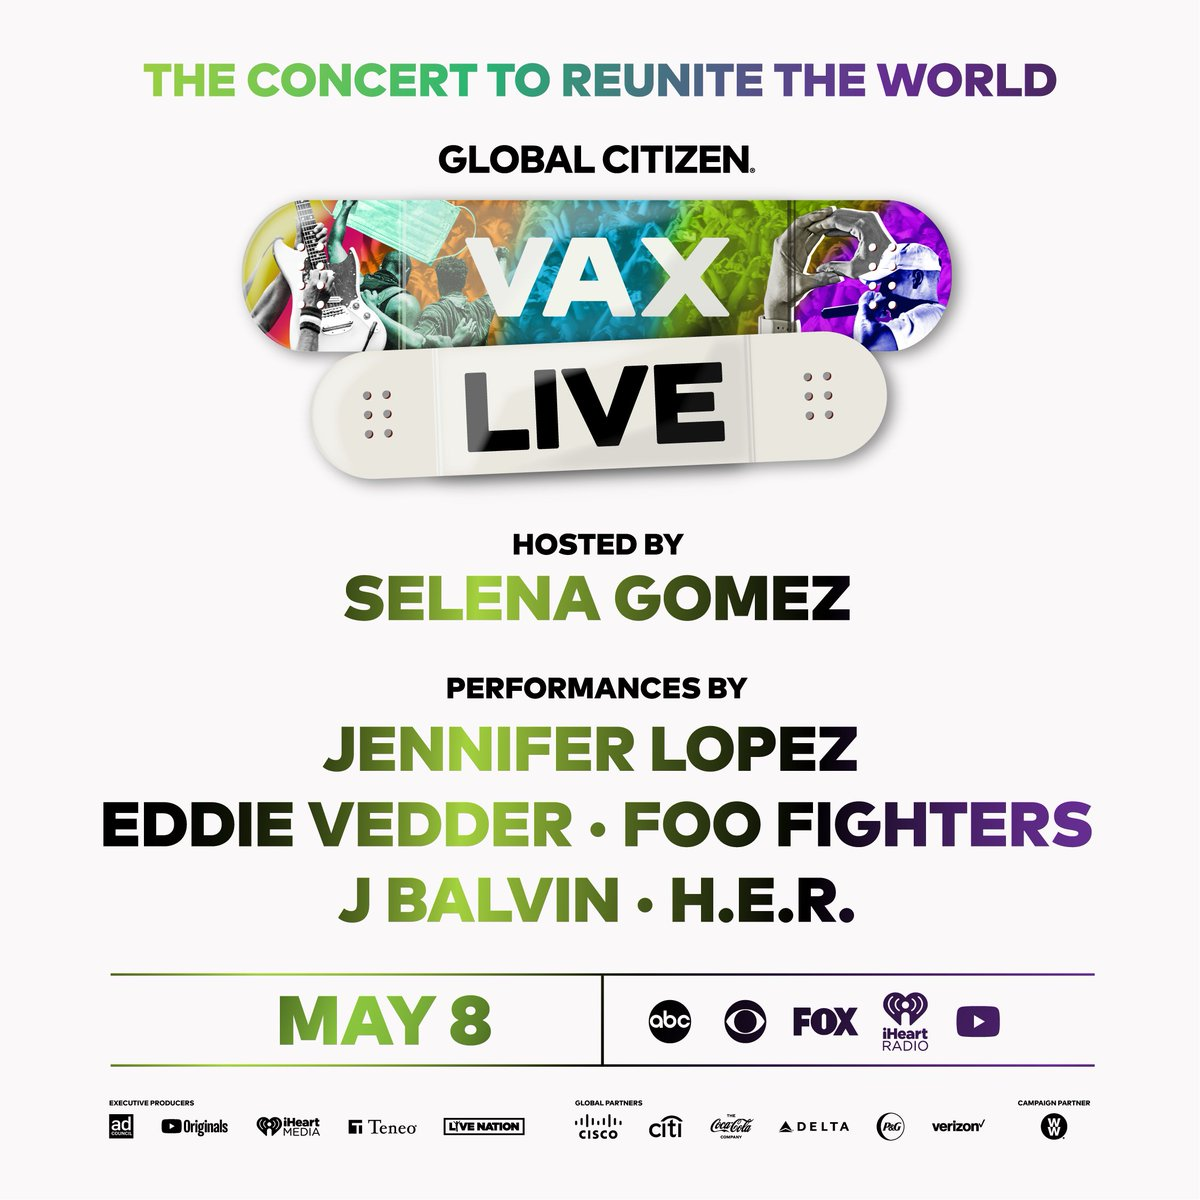 I'm so excited to announce that I'm hosting #VaxLive: The Concert to Reunite the World! I'll be joining @glblctzn in calling for equitable COVID-19 vaccine distribution for all. Tune in Saturday, May 8: https://t.co/GcRFROXS9H https://t.co/CTzjqdon7W